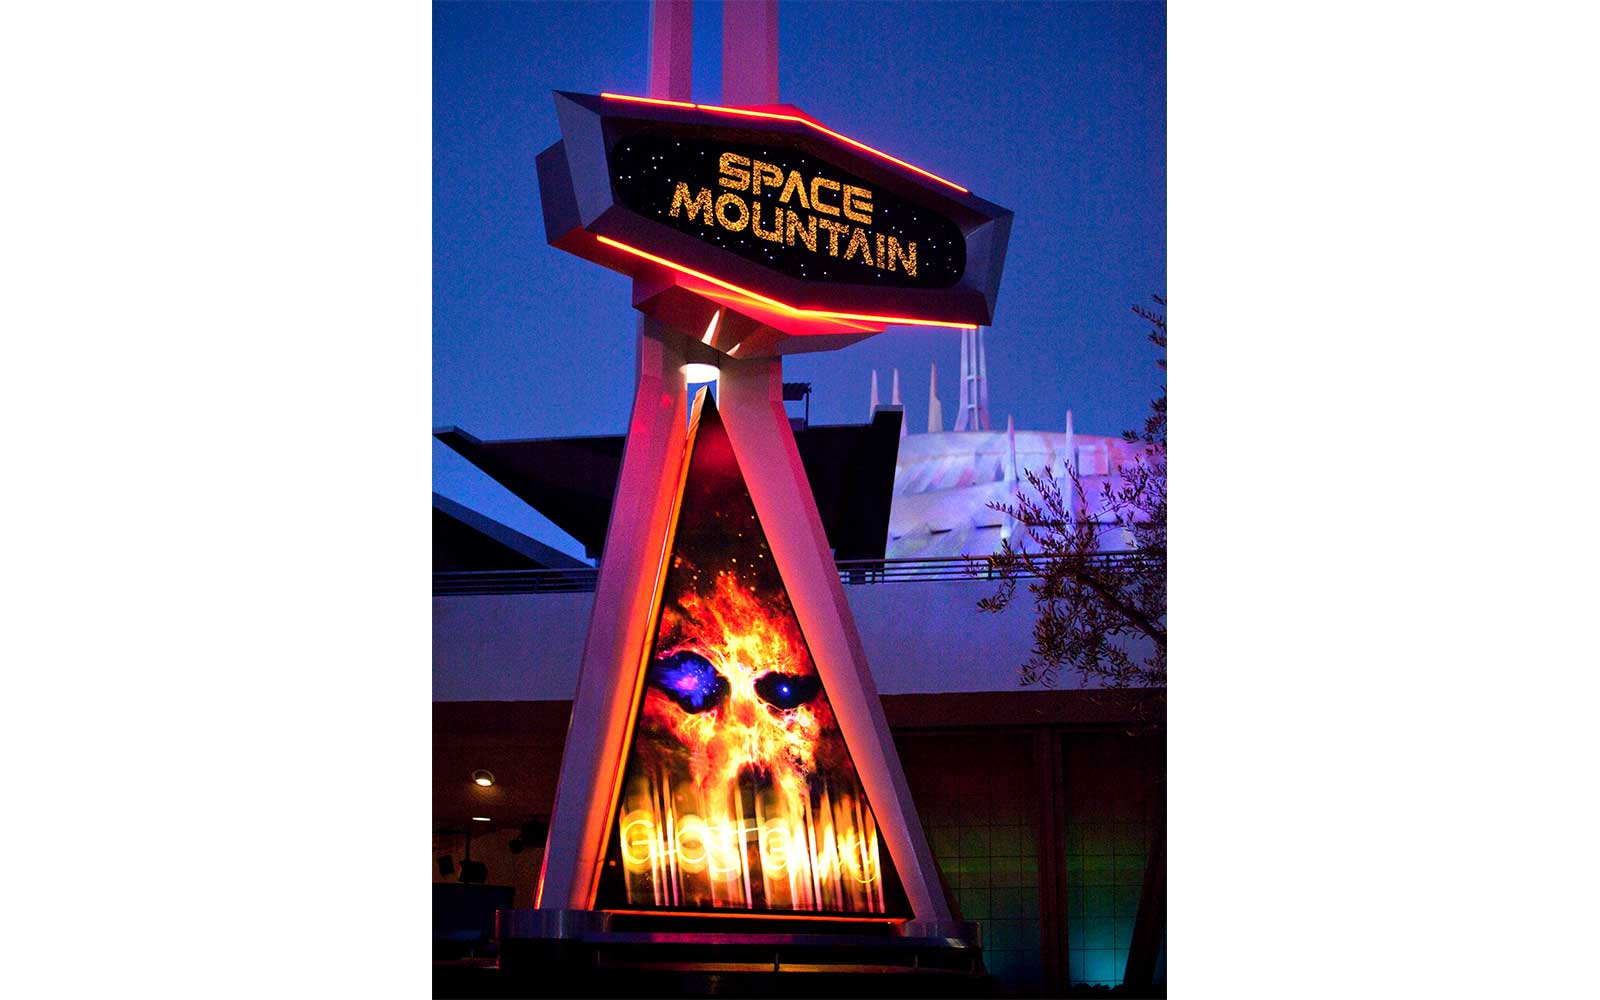 The Space Mountain  Ghost Galaxy  ride at Disneyland during Halloween season